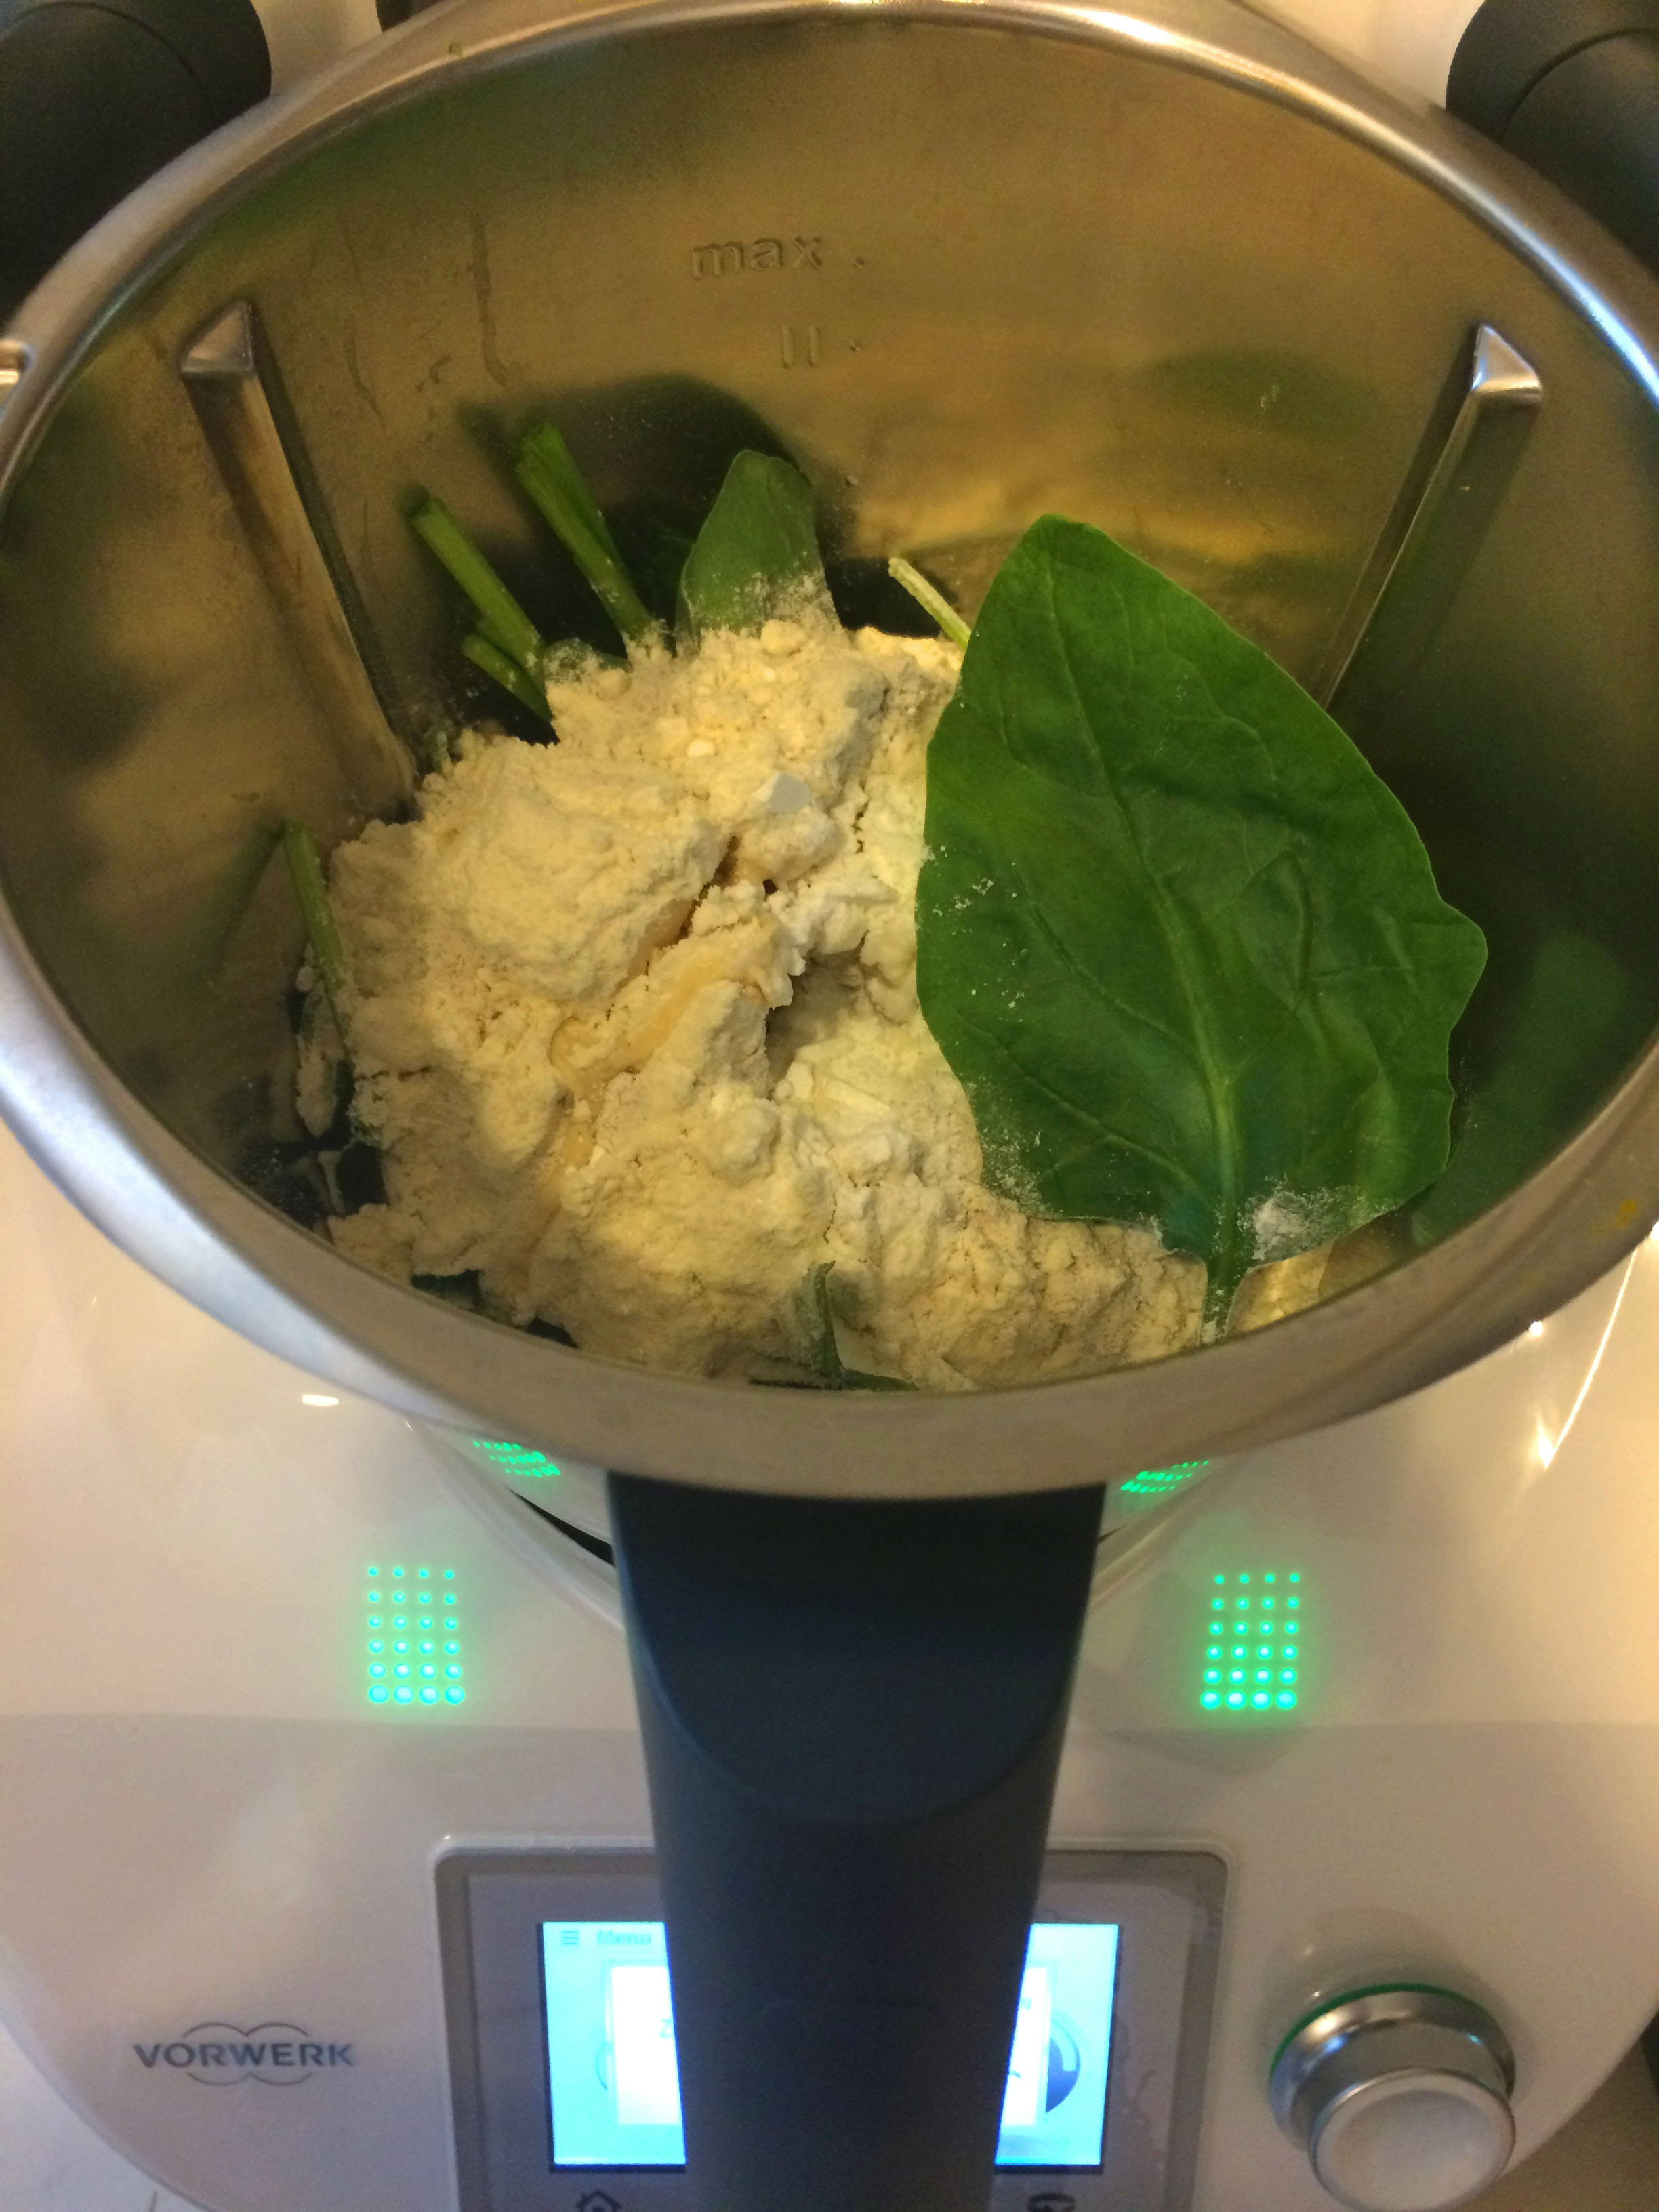 thermomix ingredients